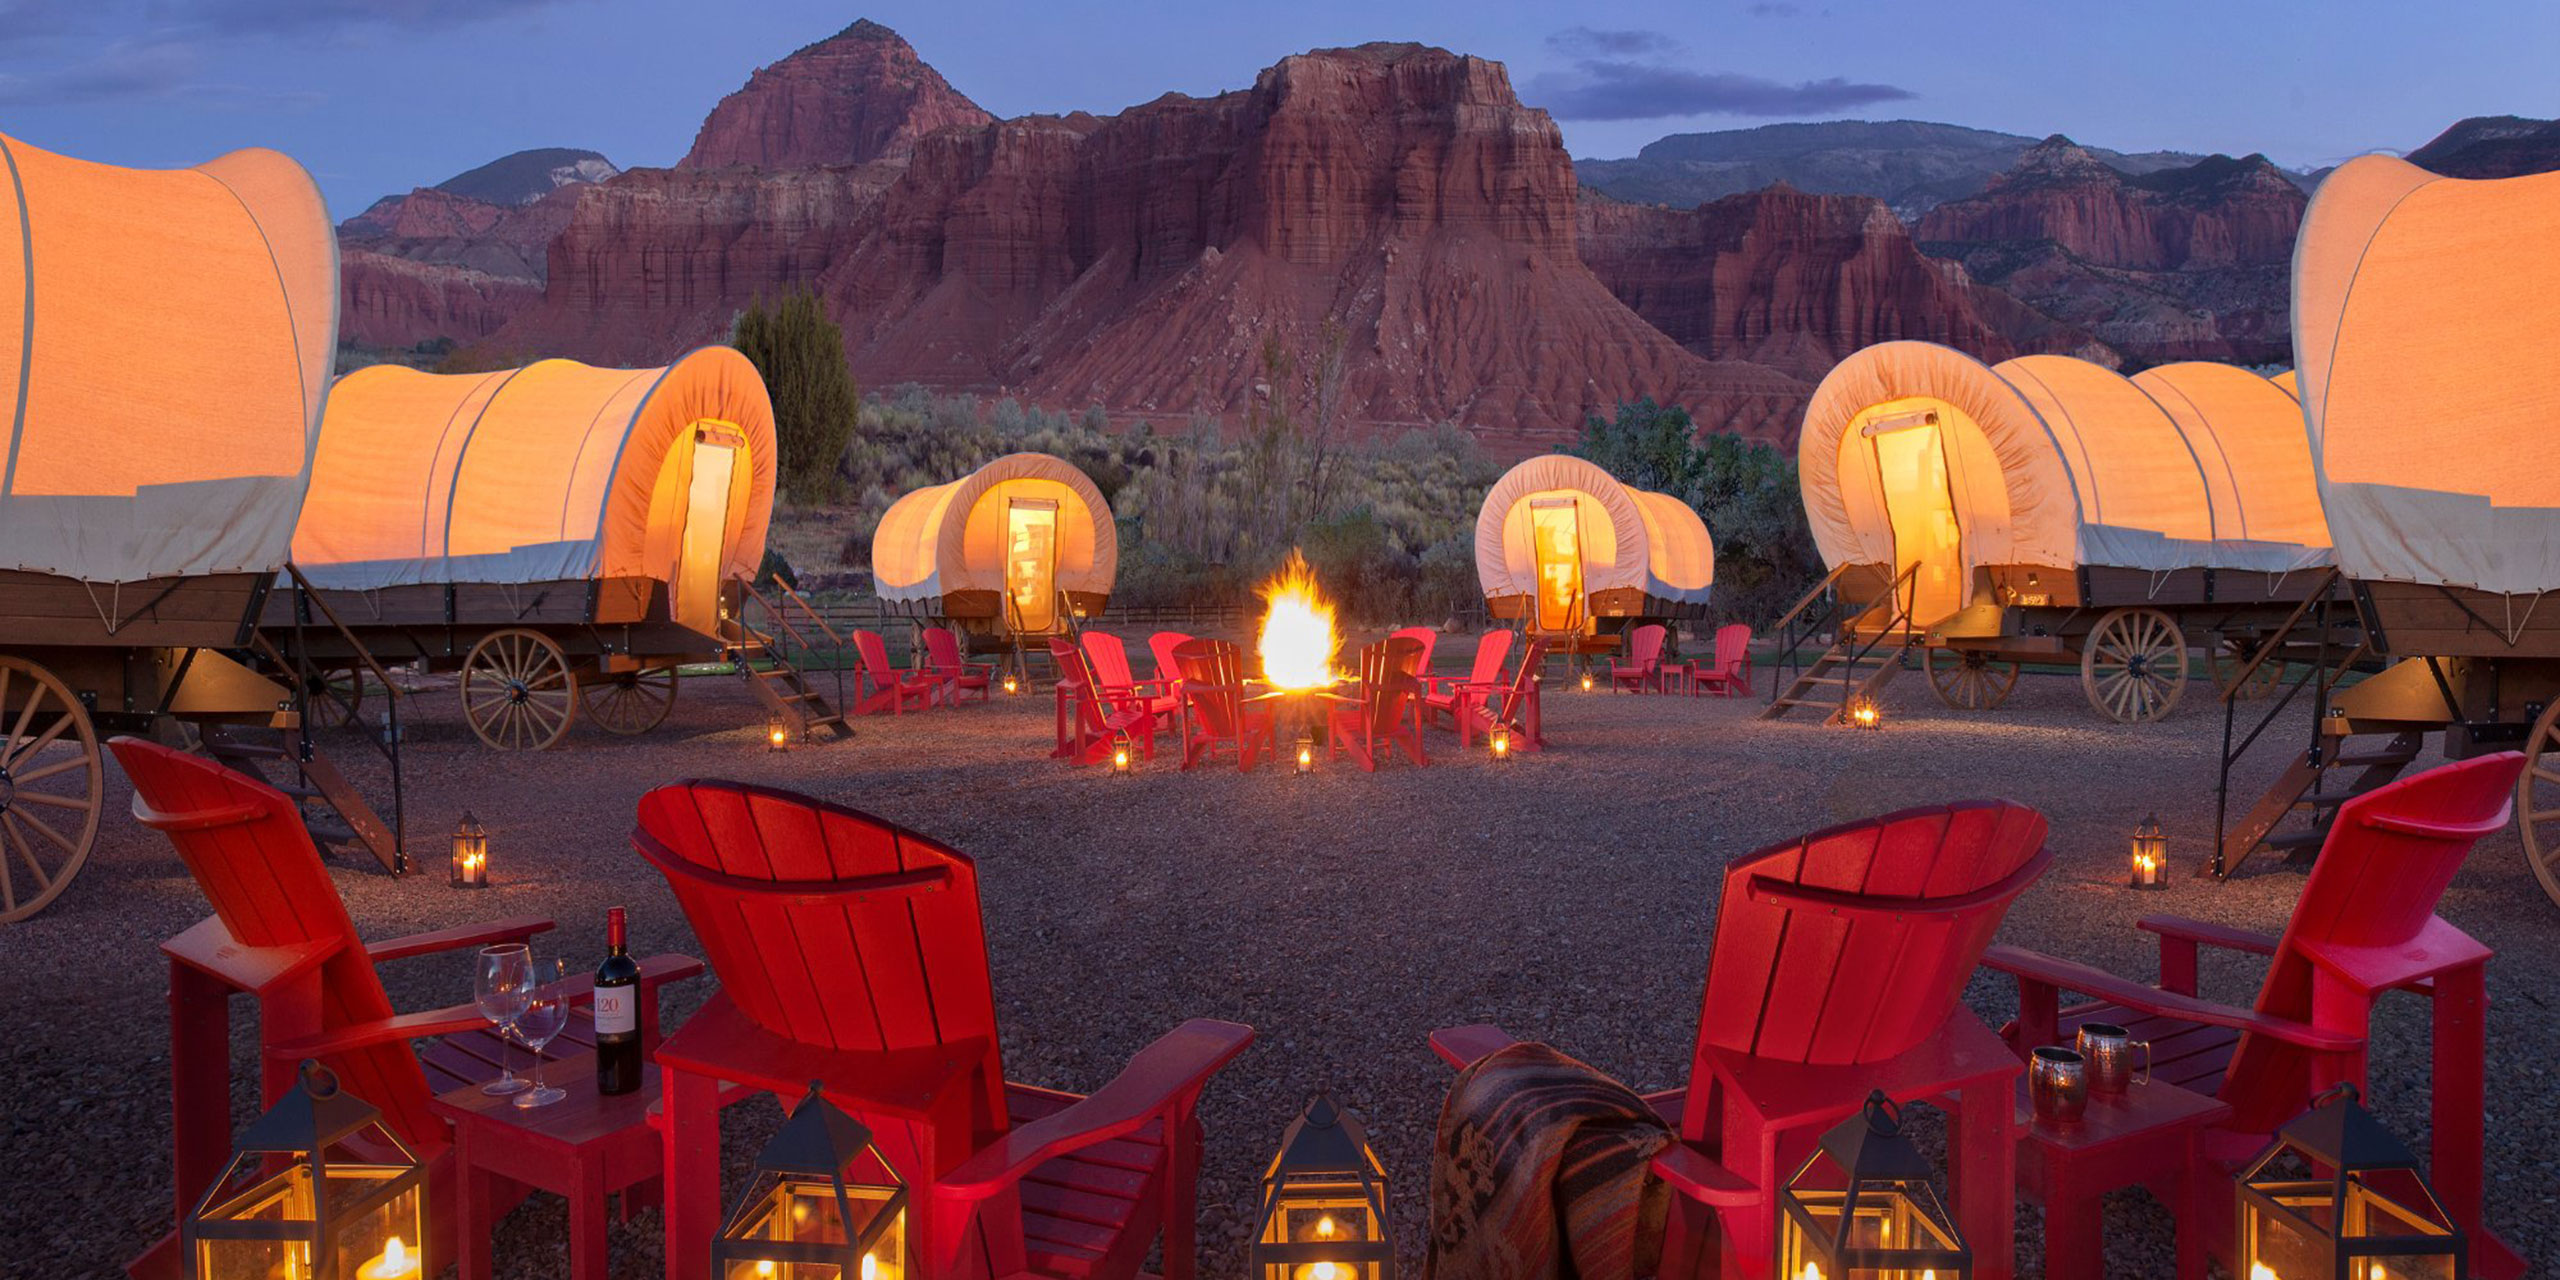 Conestoga Wagon Camping at Capitol Reef Resort; Courtesy of Capitol Reef Resort